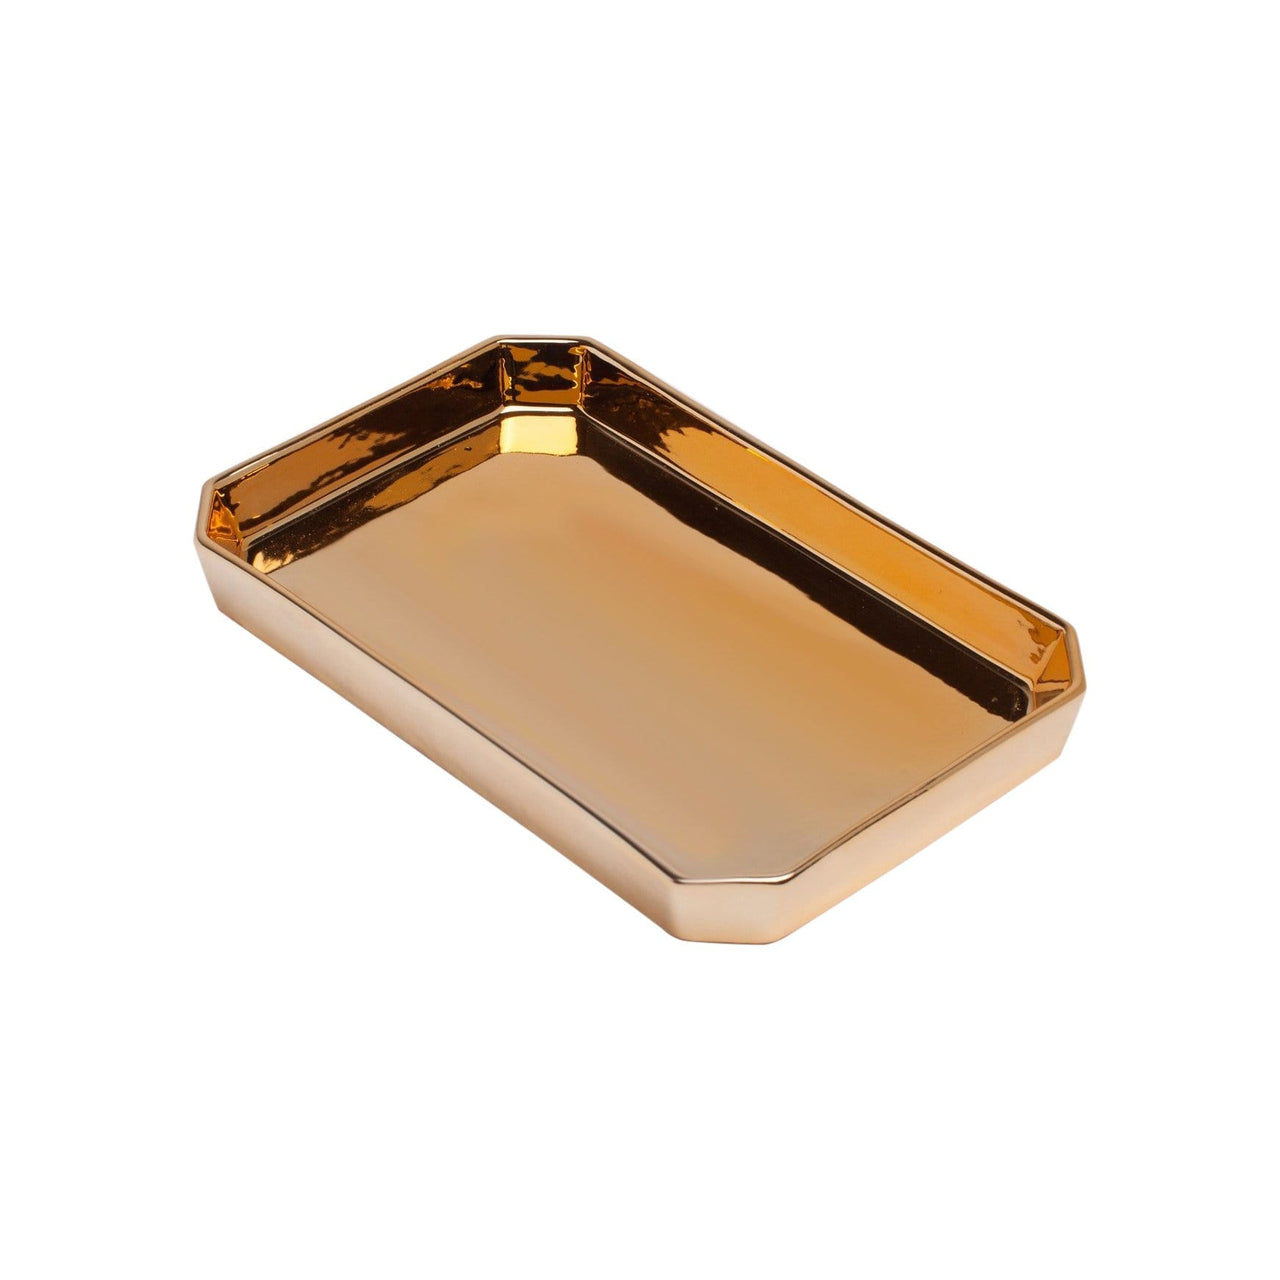 ODEME Home Accessories Gold Catchall